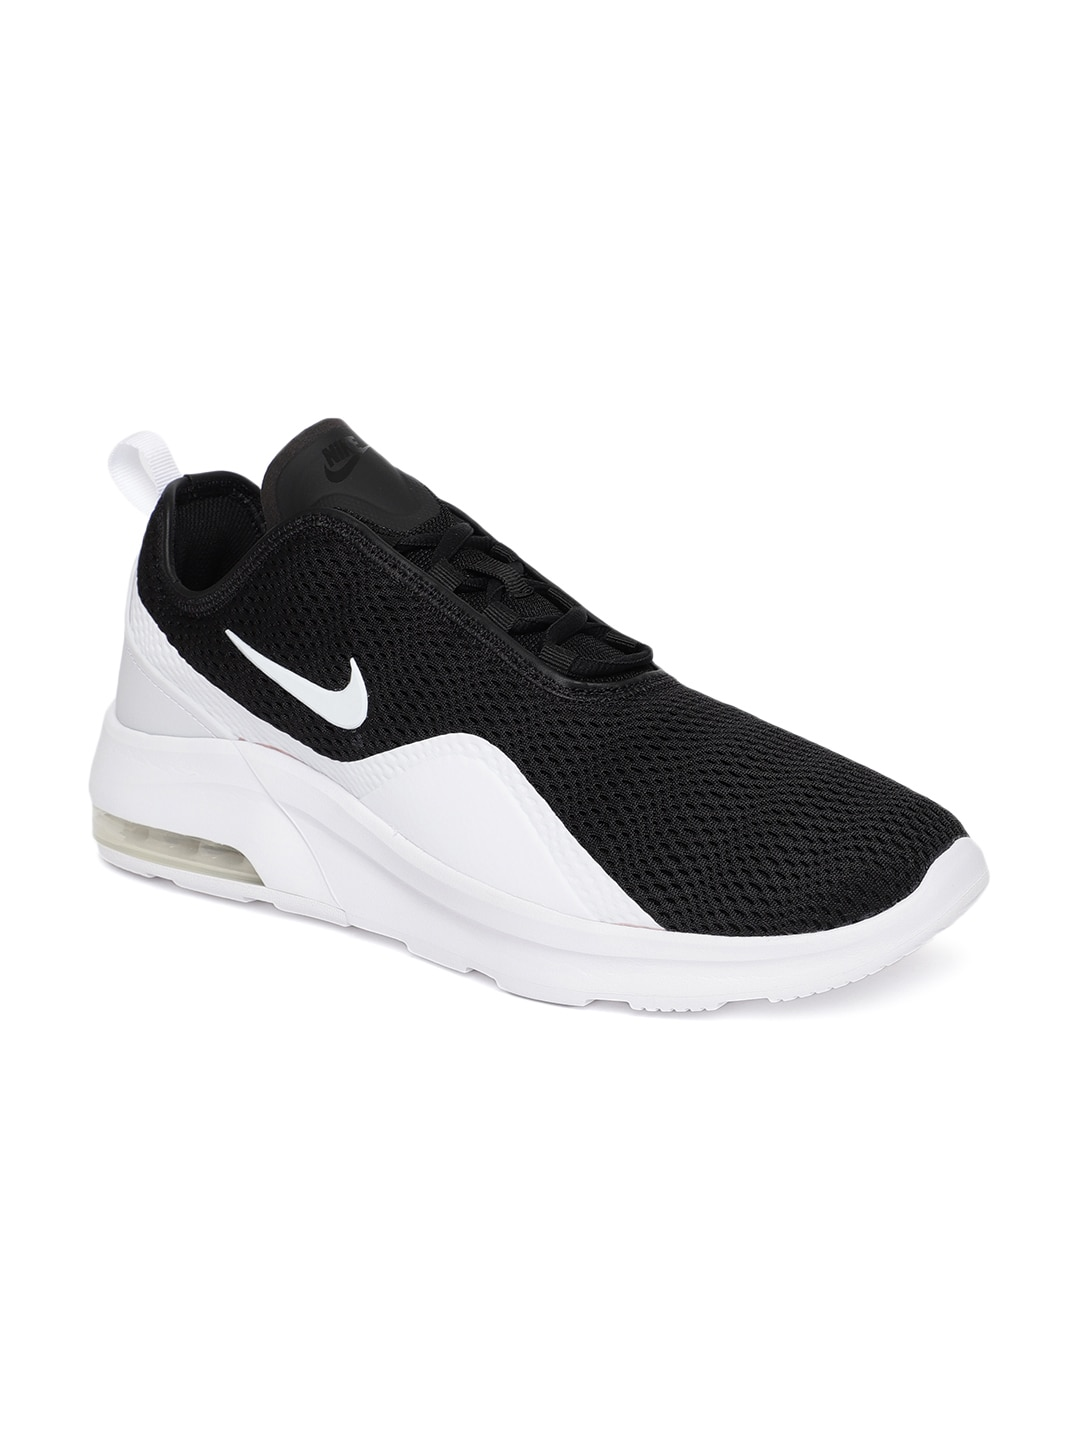 new product 5bcbd d3b87 Nike Air Max - Buy Nike Air Max Shoes, Bags, Sneakers in India